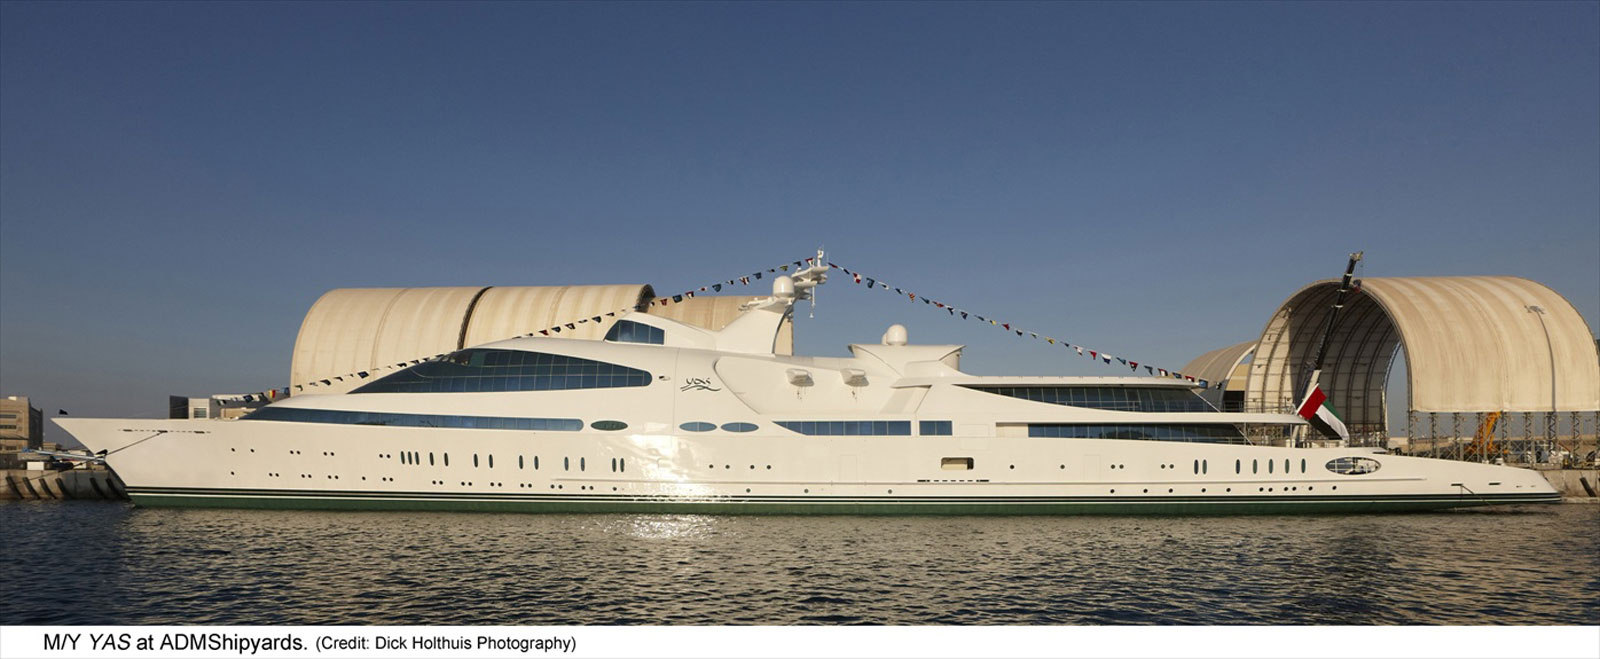 ADM Shipyards Launches Yay Supeyacht &#8211; Worlds 6th Largest Yacht